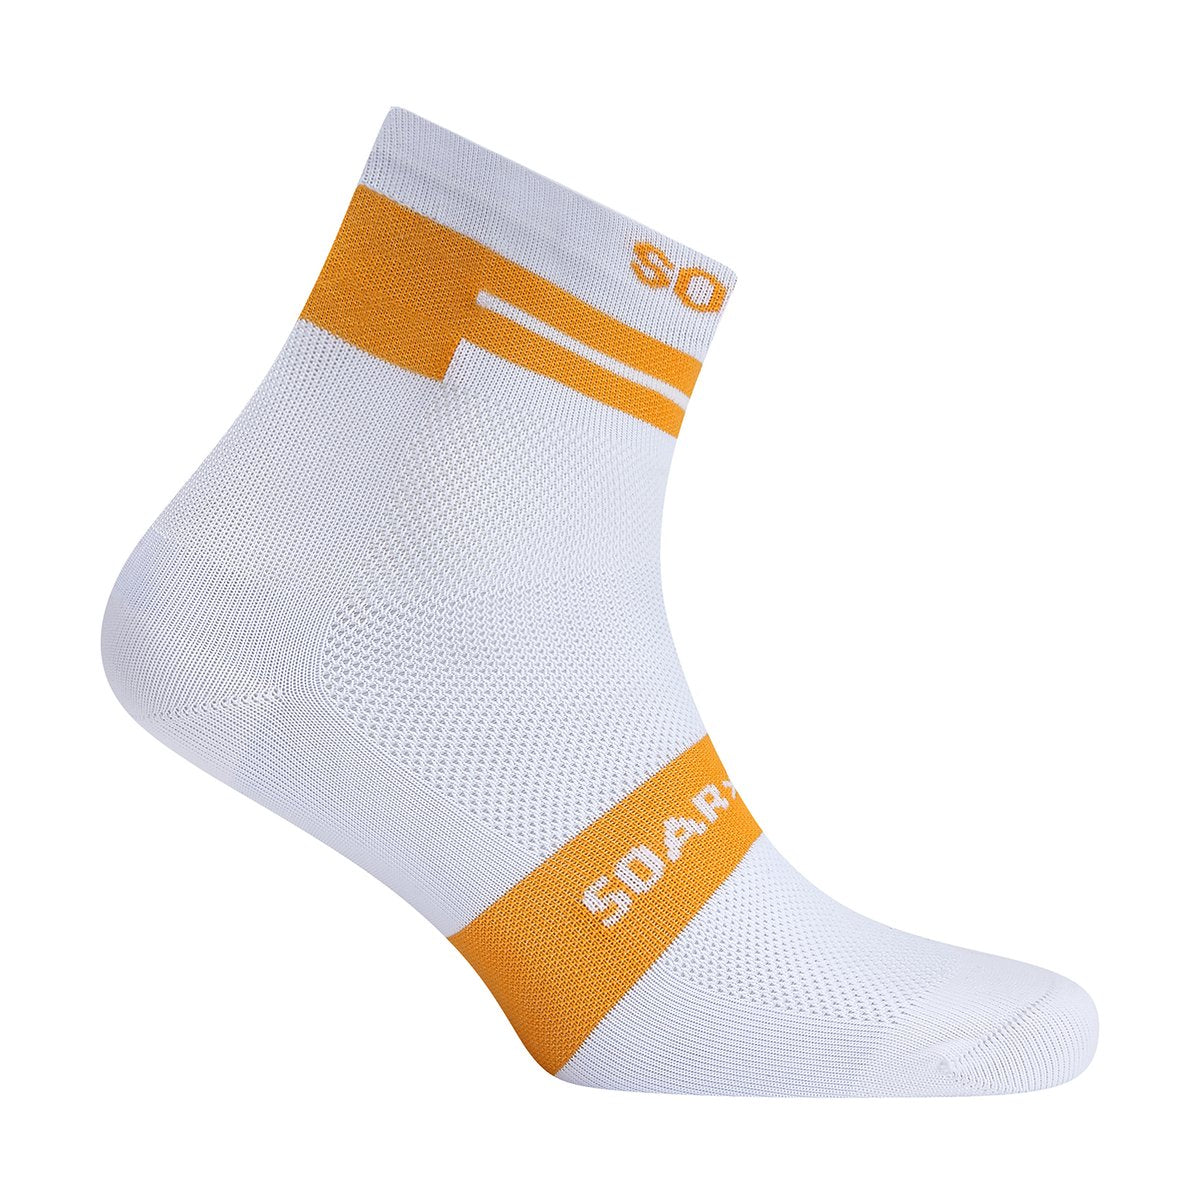 SOAR | Ankle Sock - White